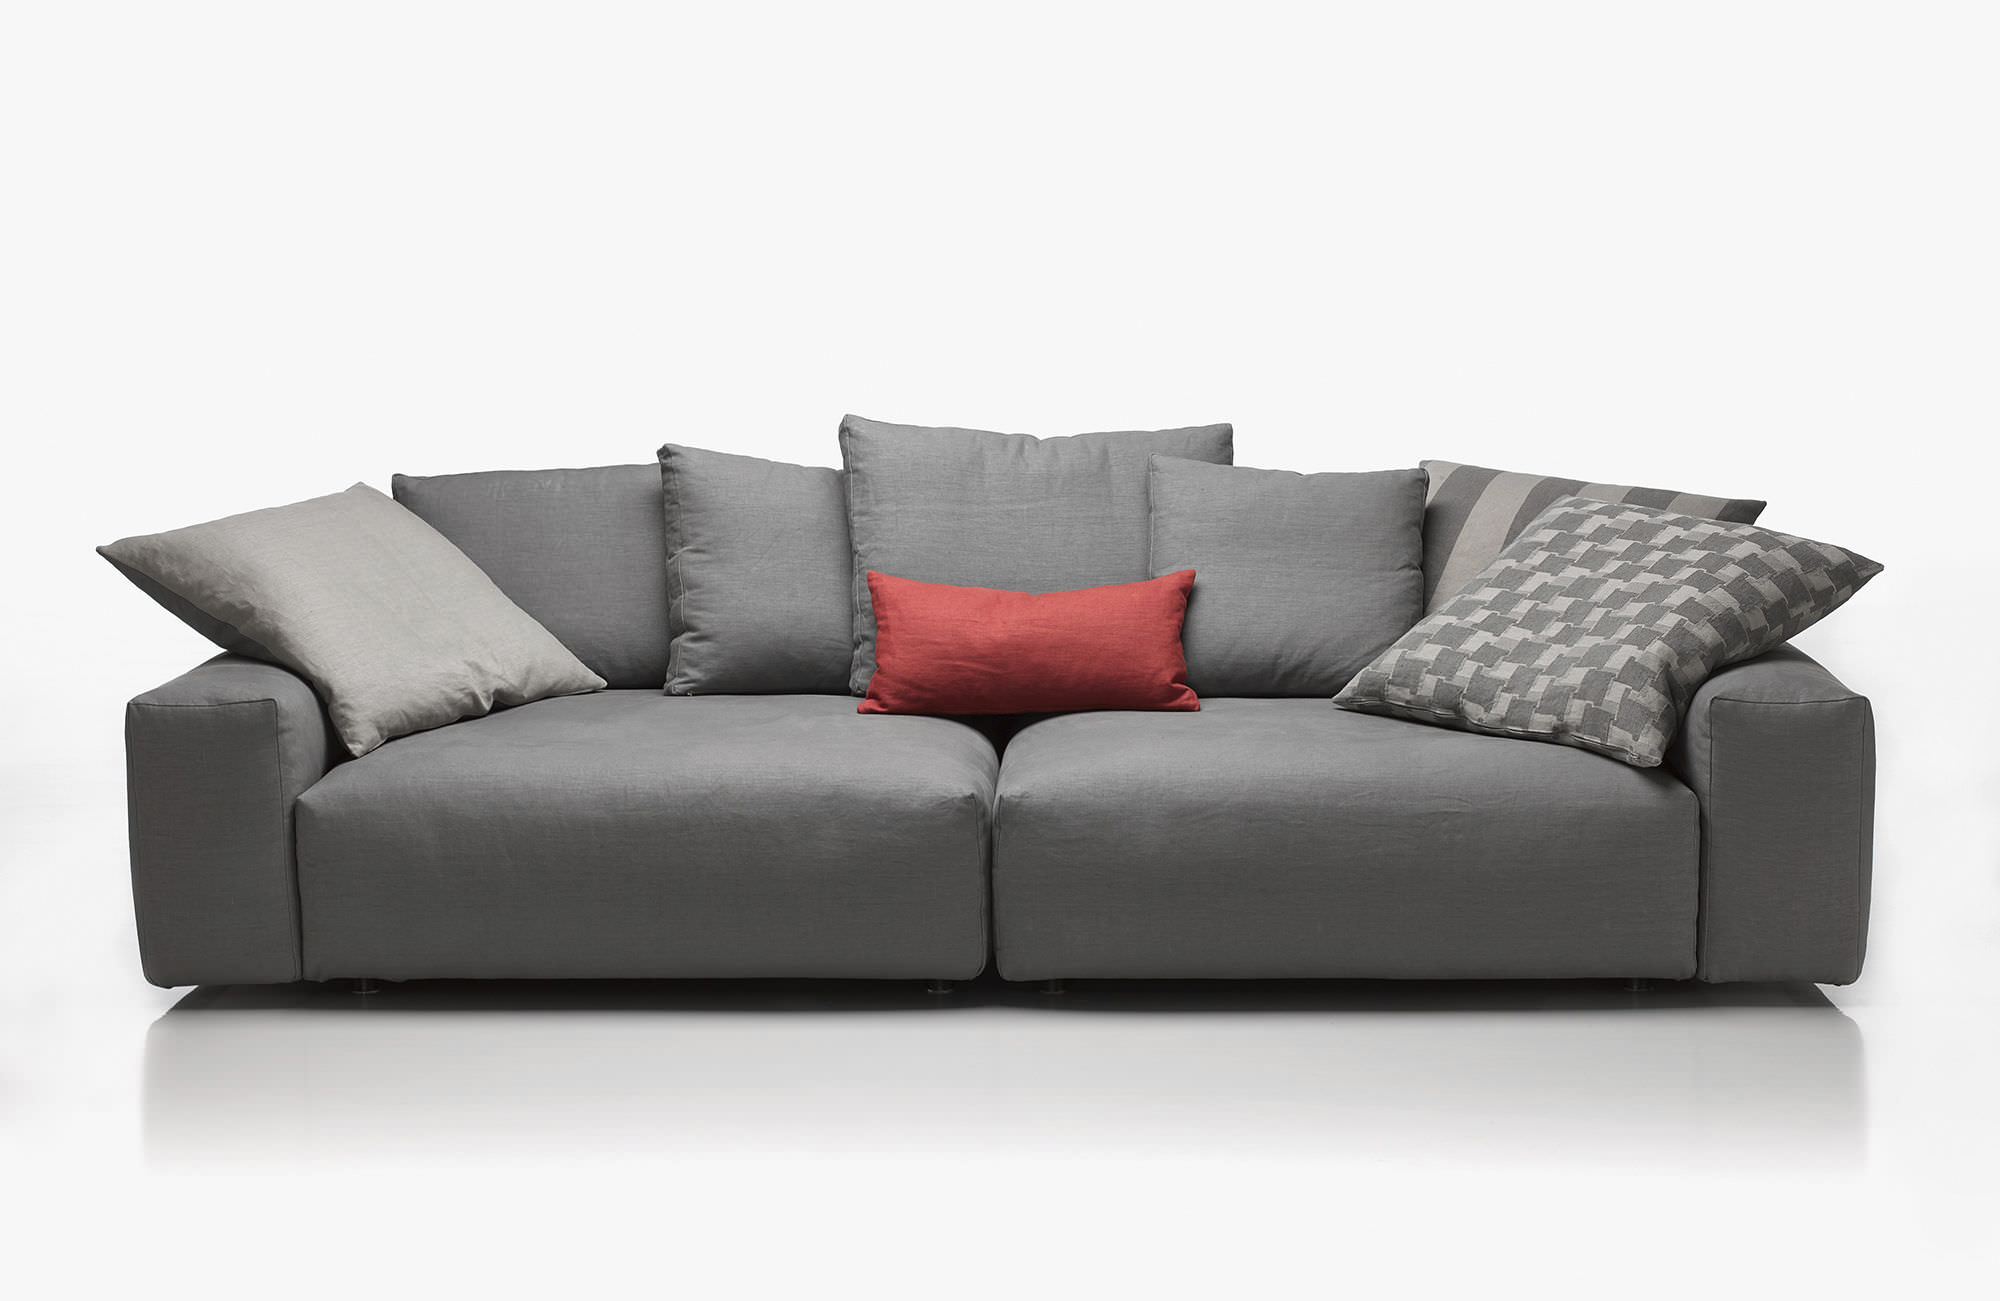 Contemporary Sofa Leather Fabric 3 Seater Baret